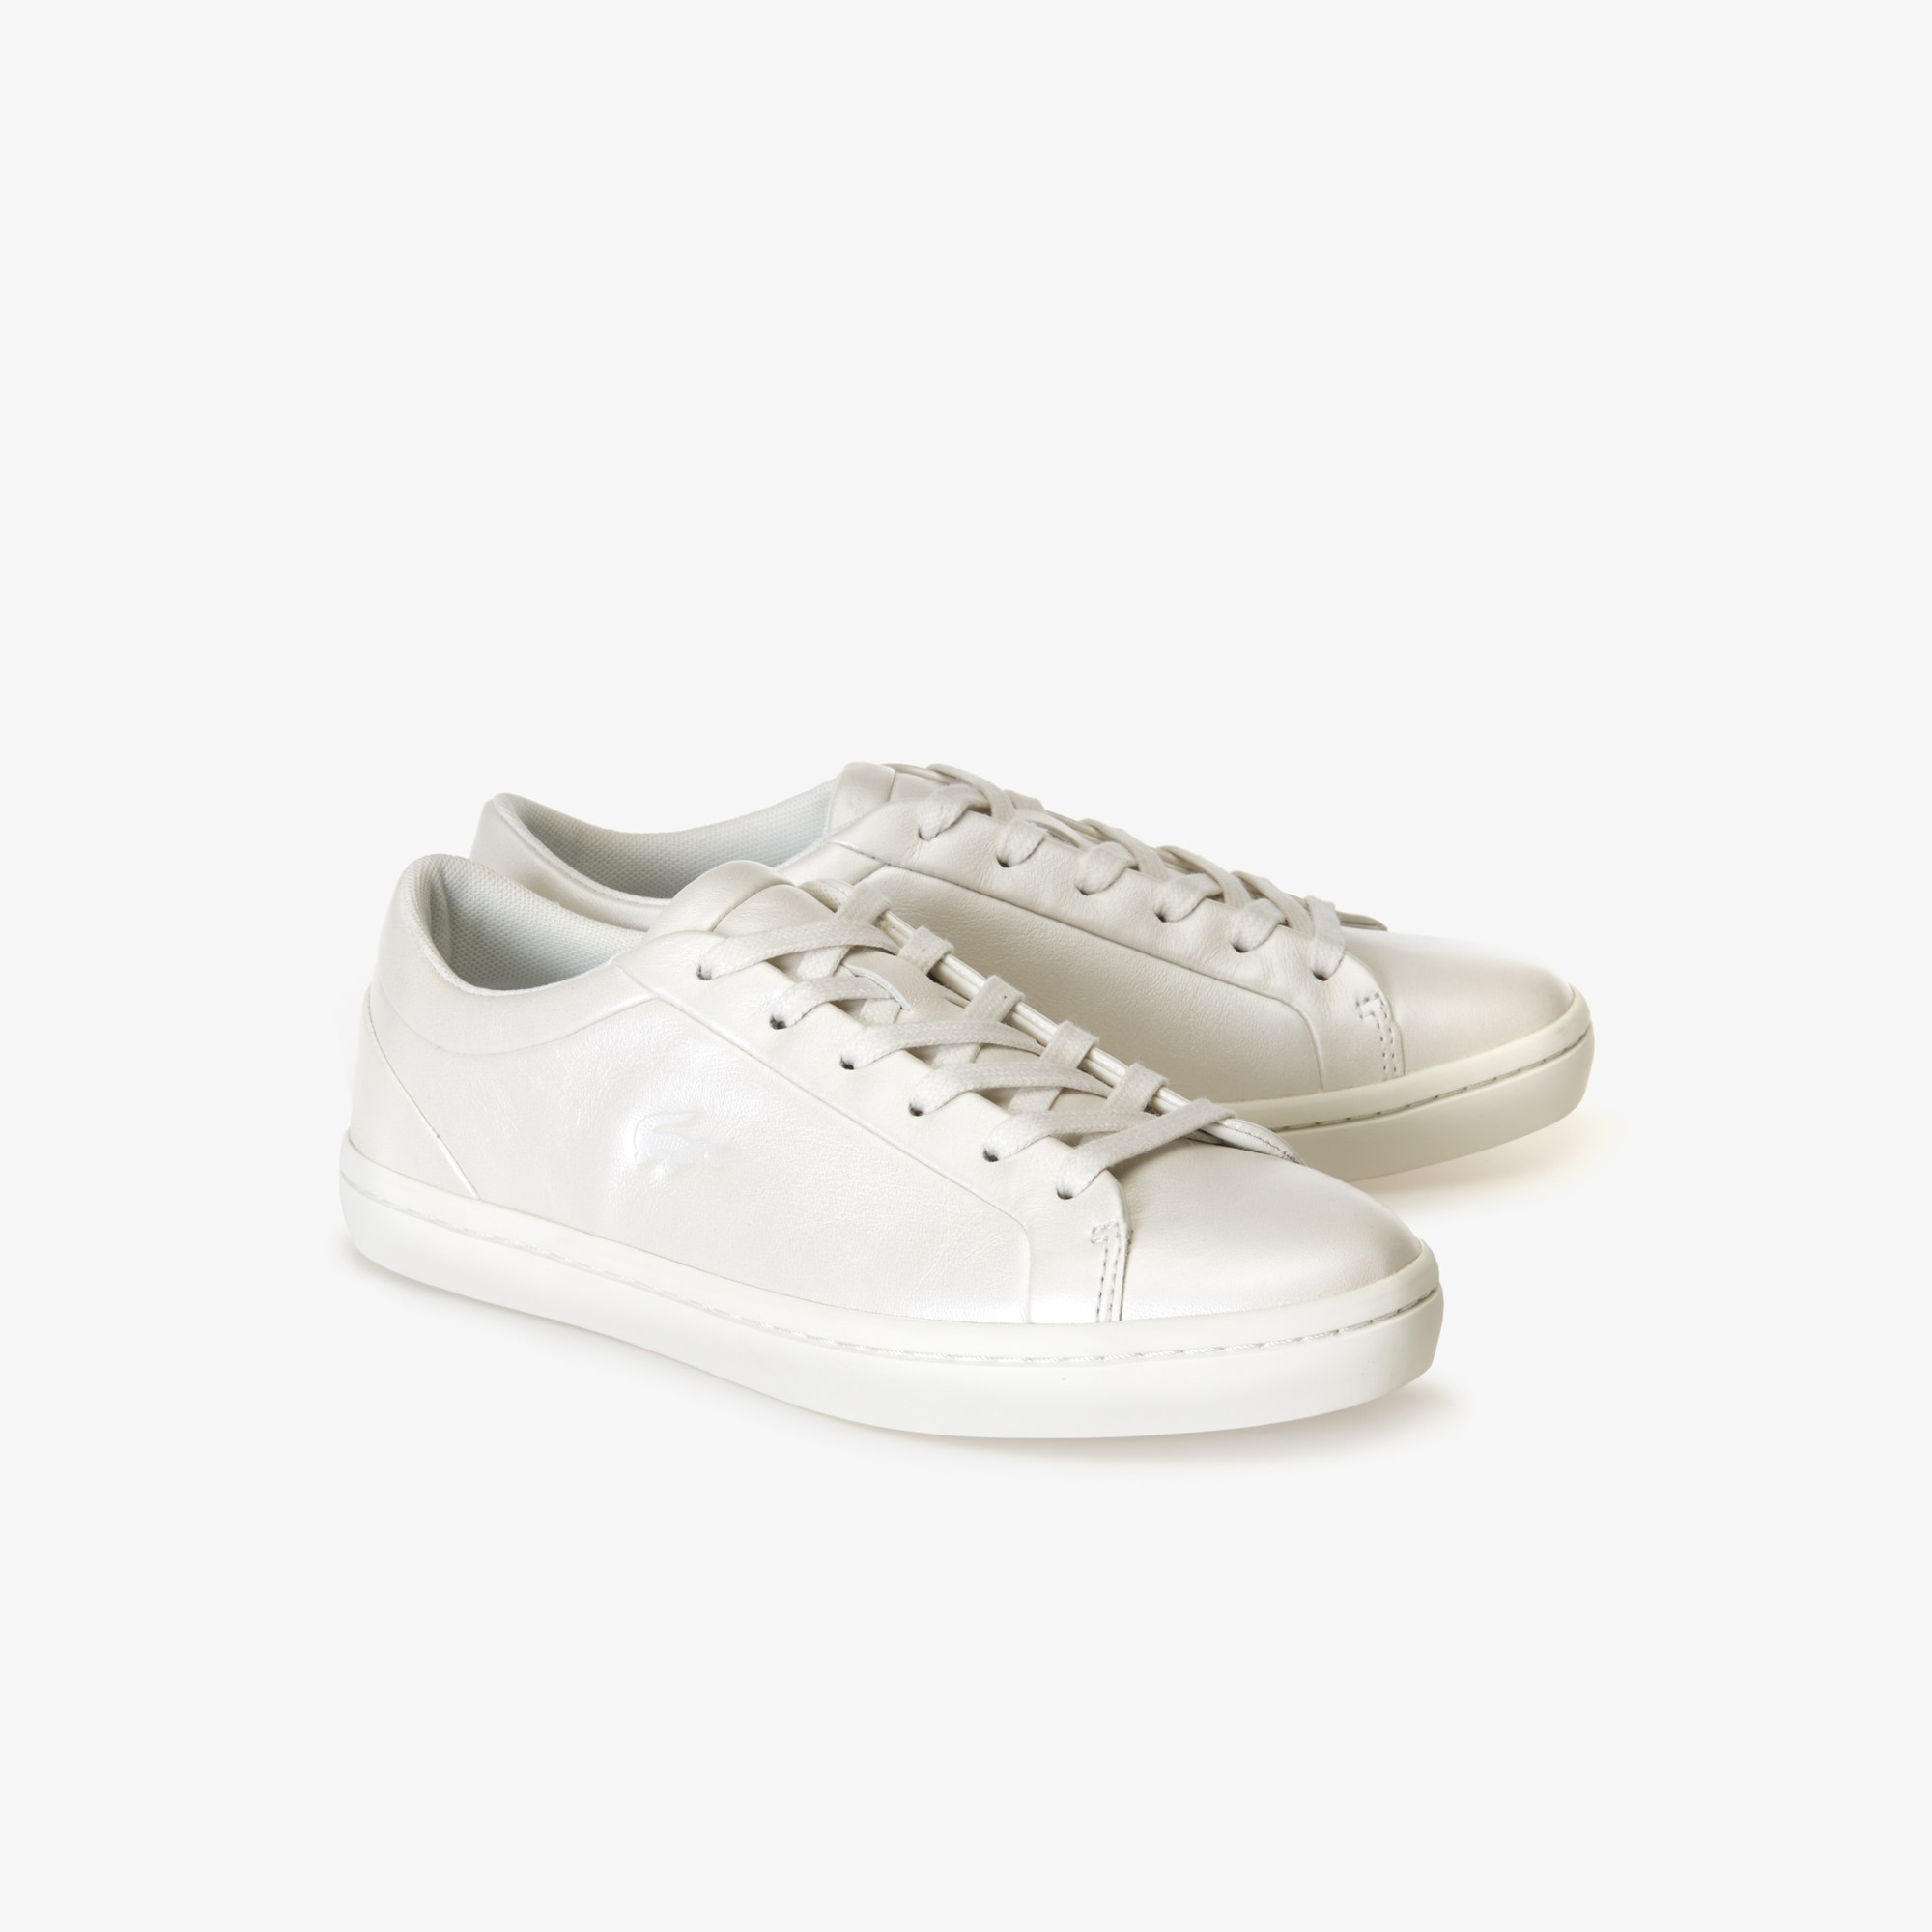 Women's Straightset Leather Trainers with Tonal Croc